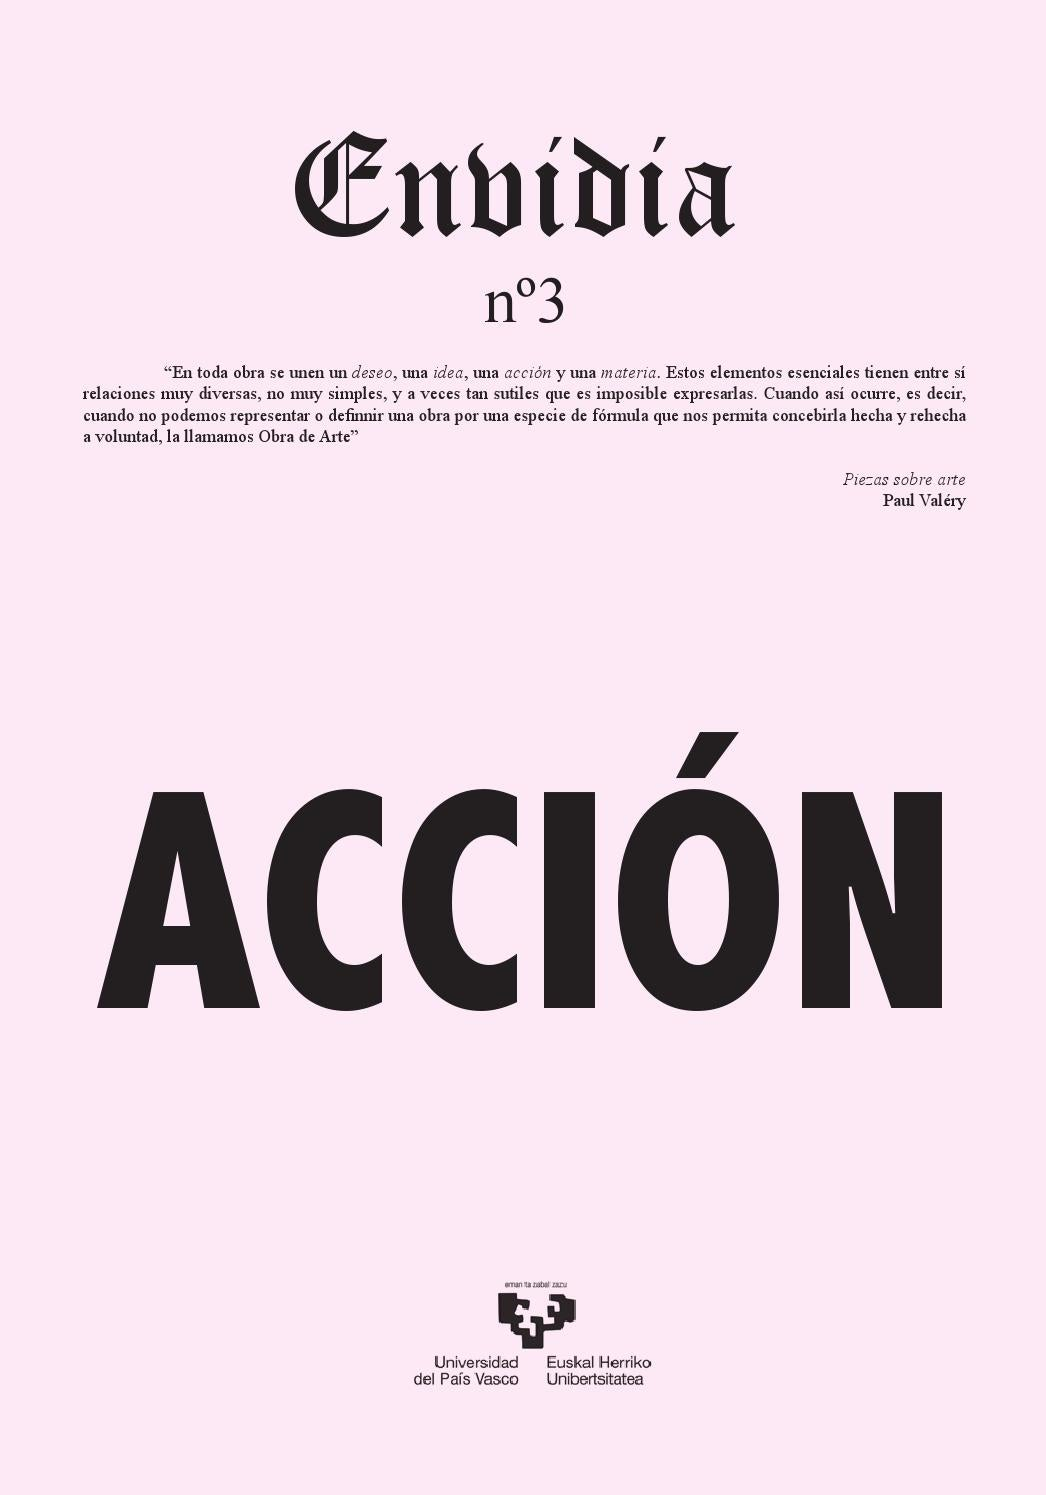 Enbidia nº3 accion by Iñaki Imaz - issuu